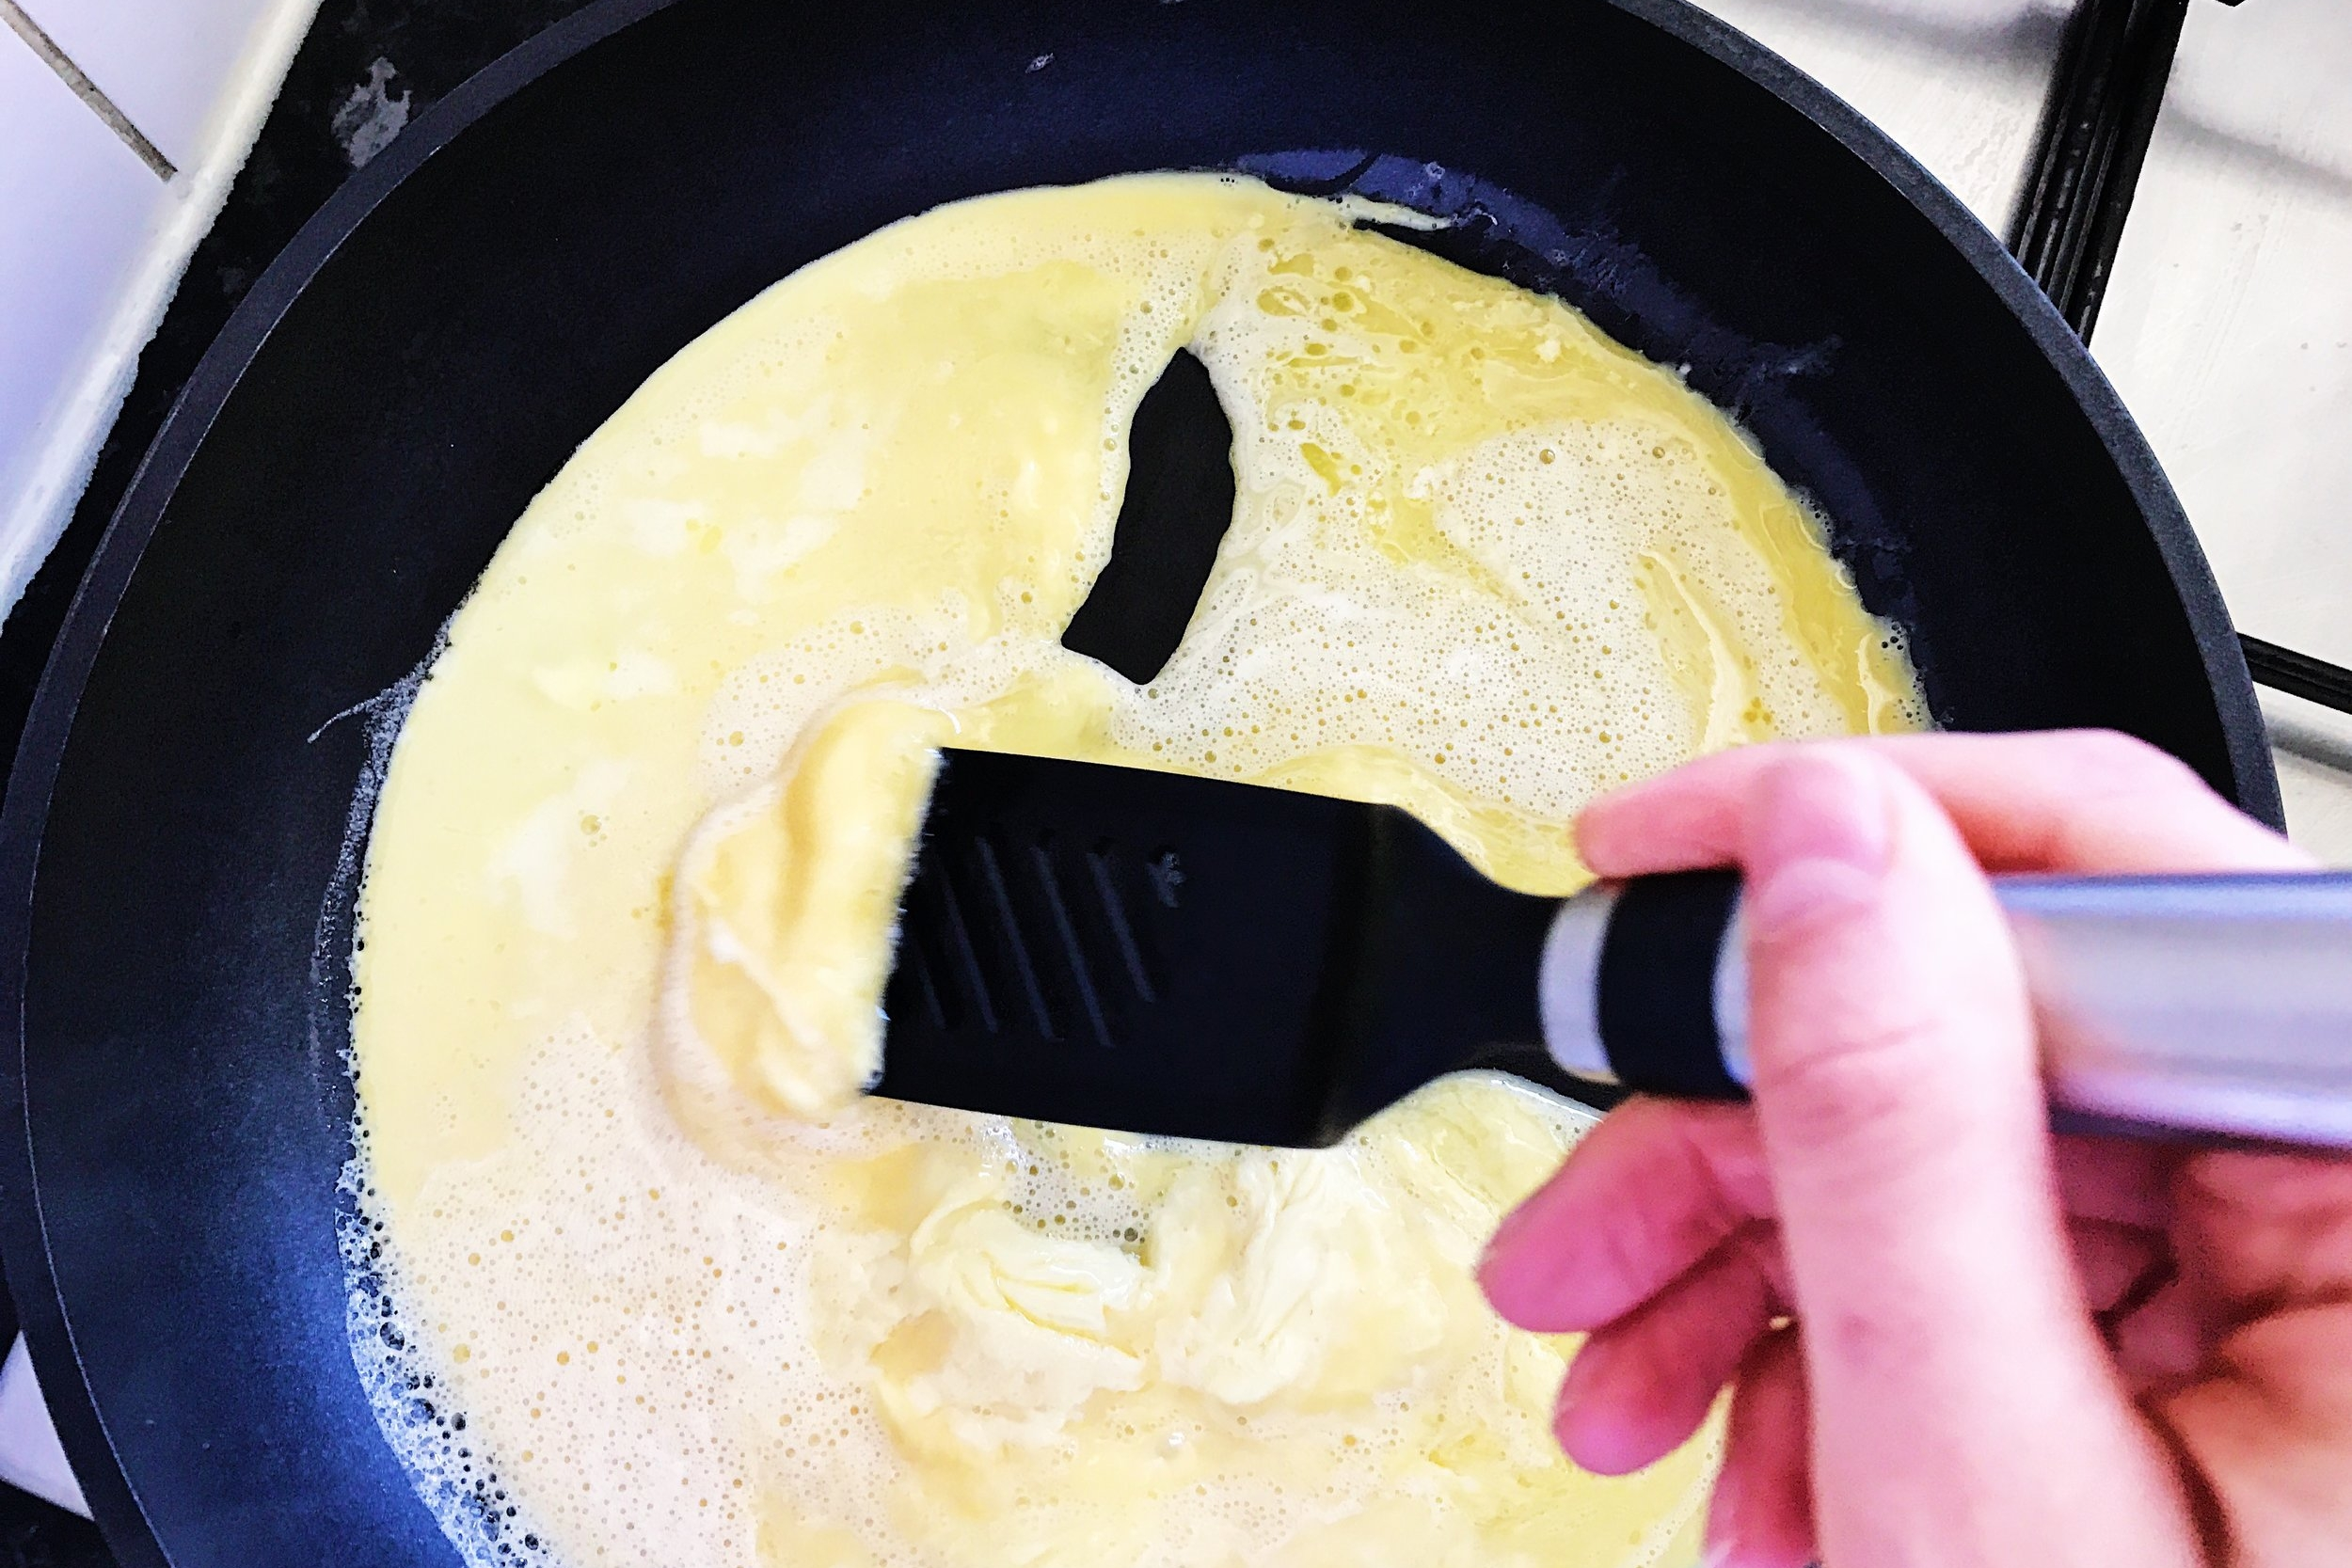 Continue stirring, careful not to break up large curds and pushing the eggs from one side of the pan towards the middle and to another side. Eggs that are still raw will fill up empty spots of the pan.